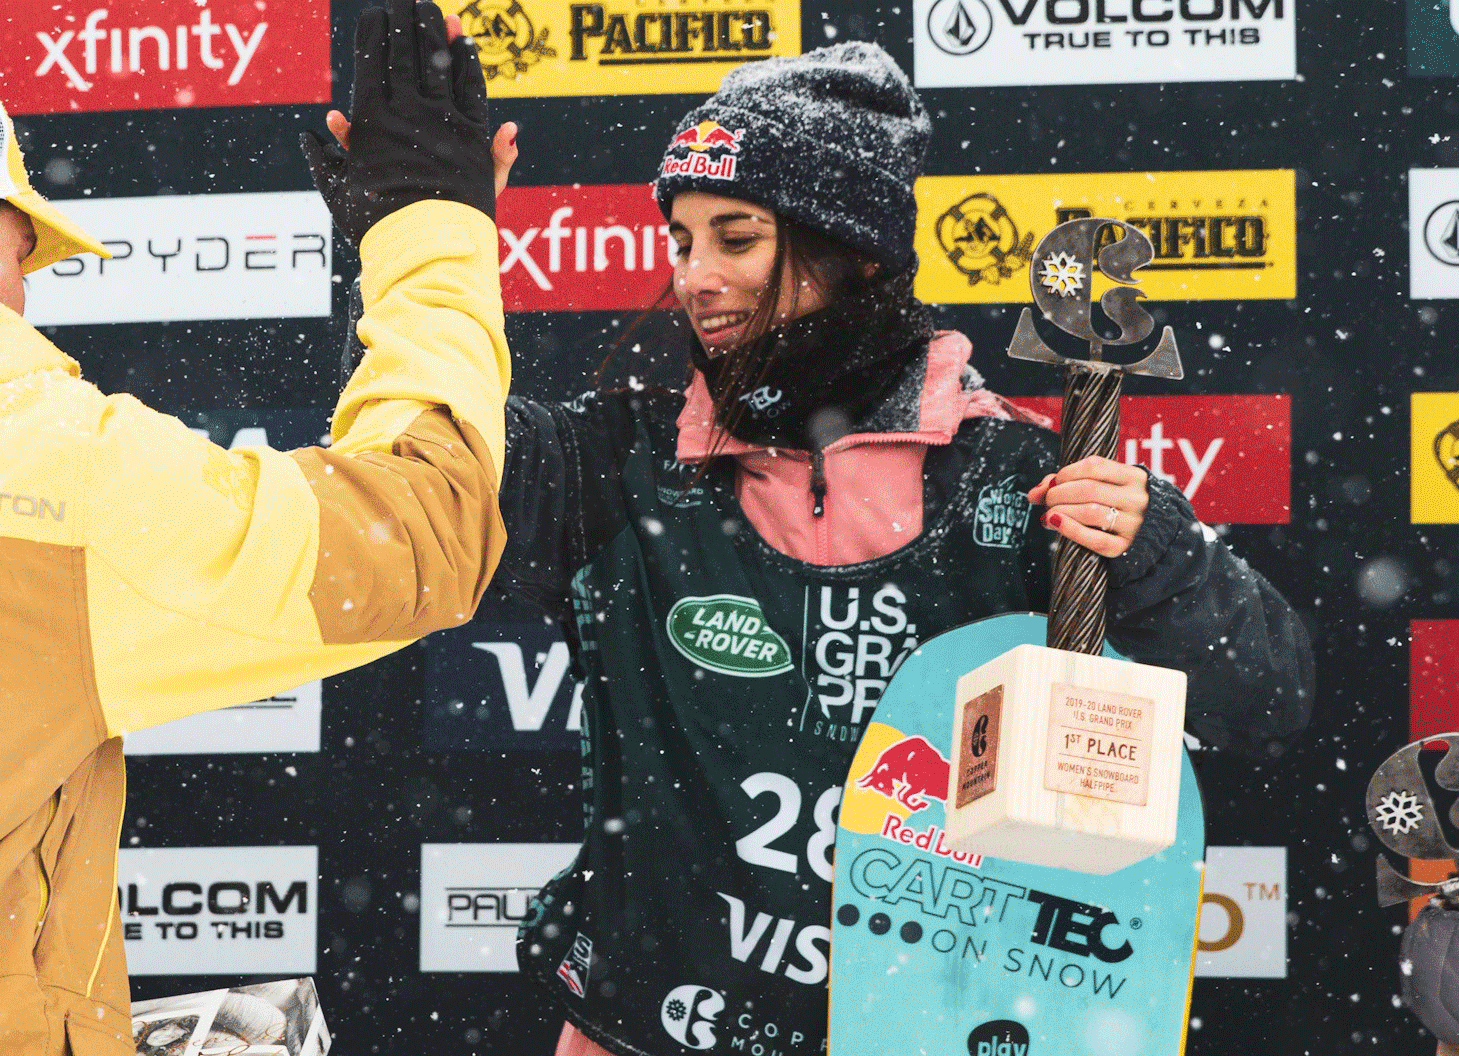 Snowboarder Queralt Castellet takes the Carttec brand all over the world